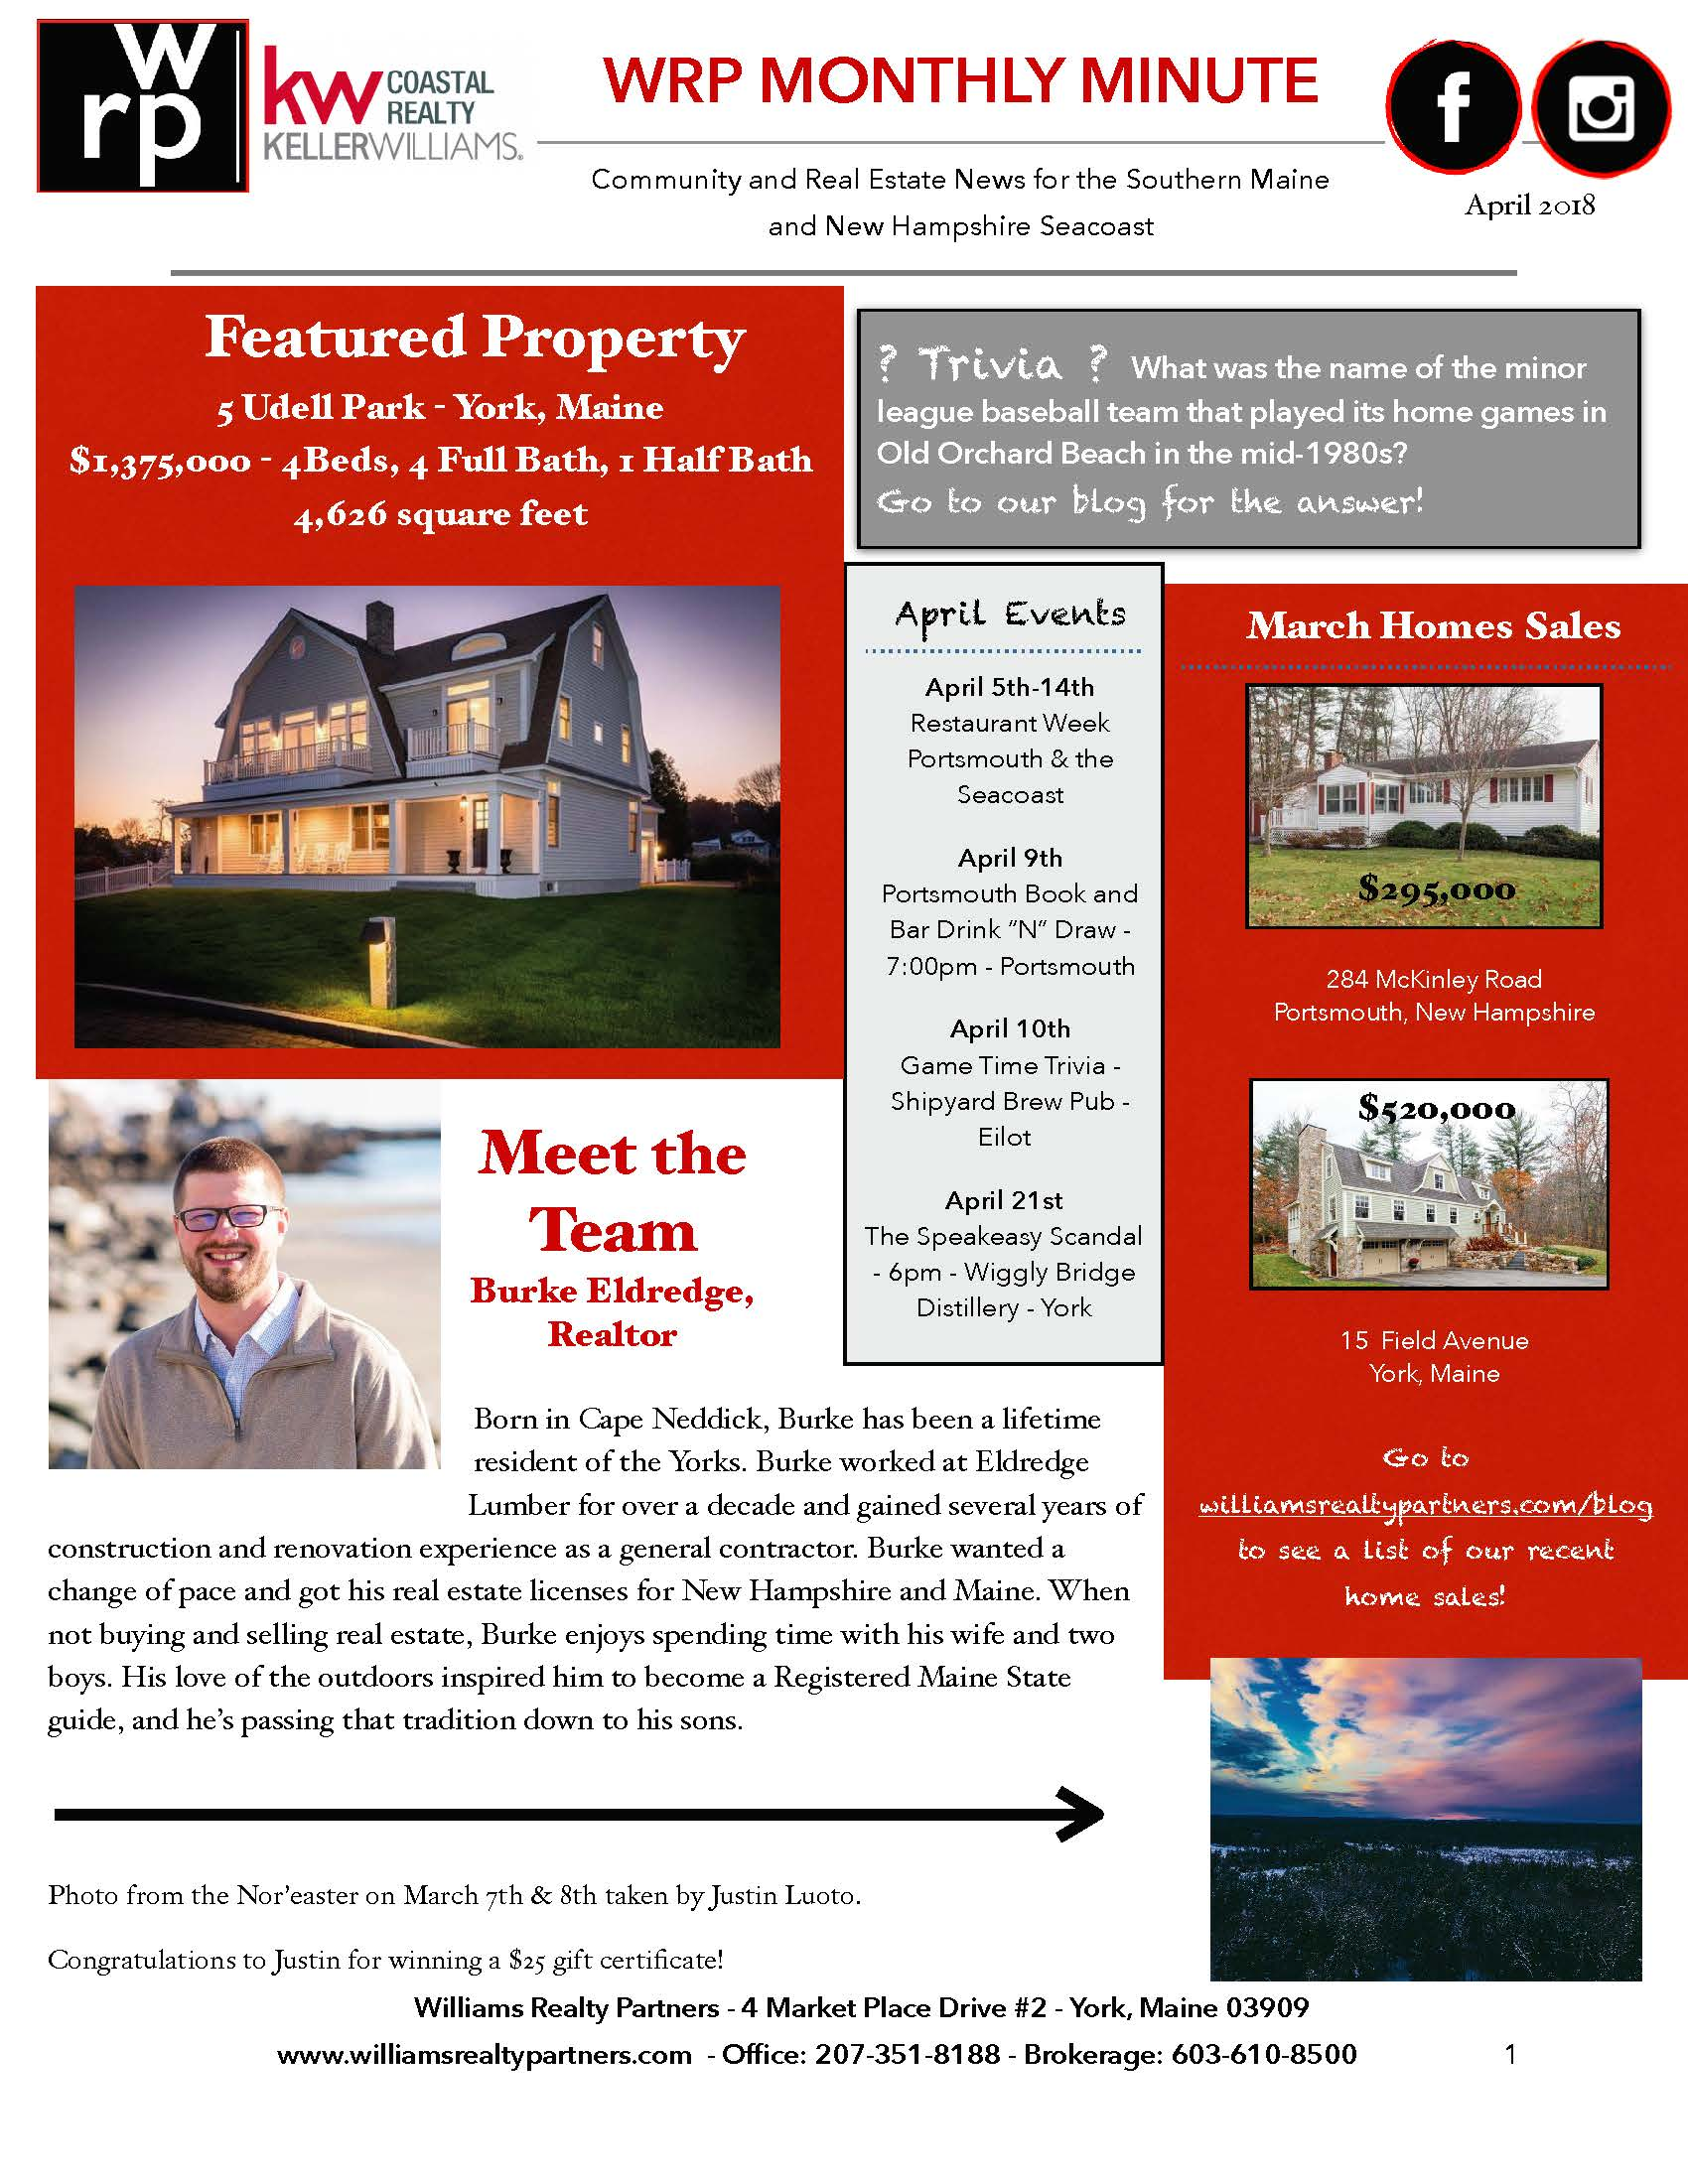 Blog - Williams Realty Partners